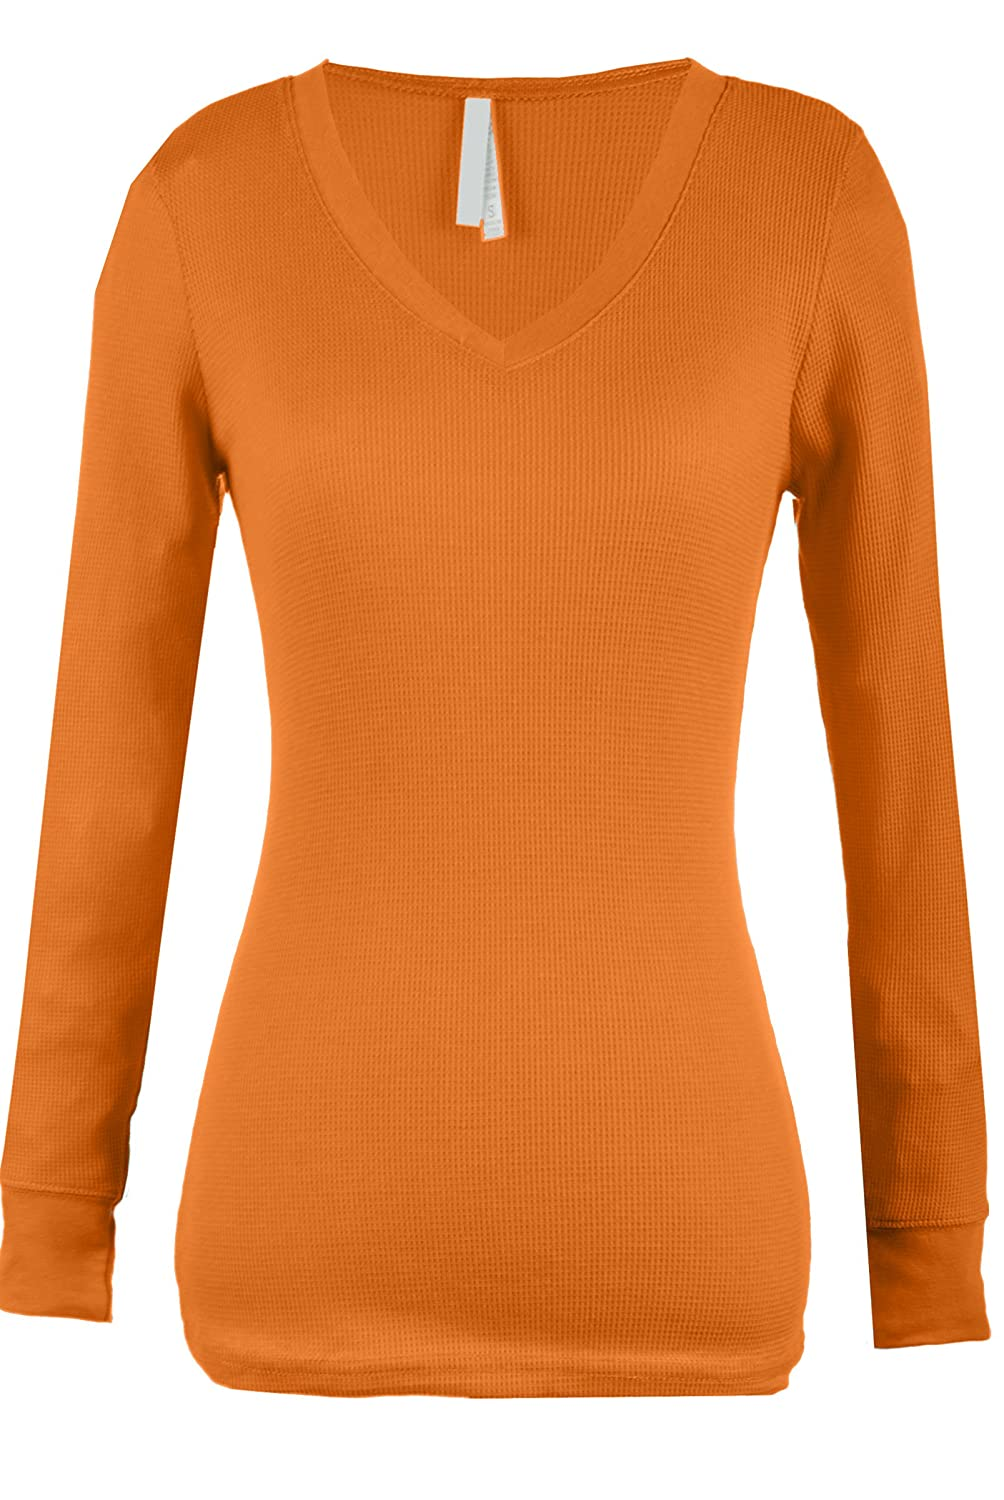 Top Legging TL Womens Variety Comfy Solid V-Neck Long Sleeve Thermal Basic Tops